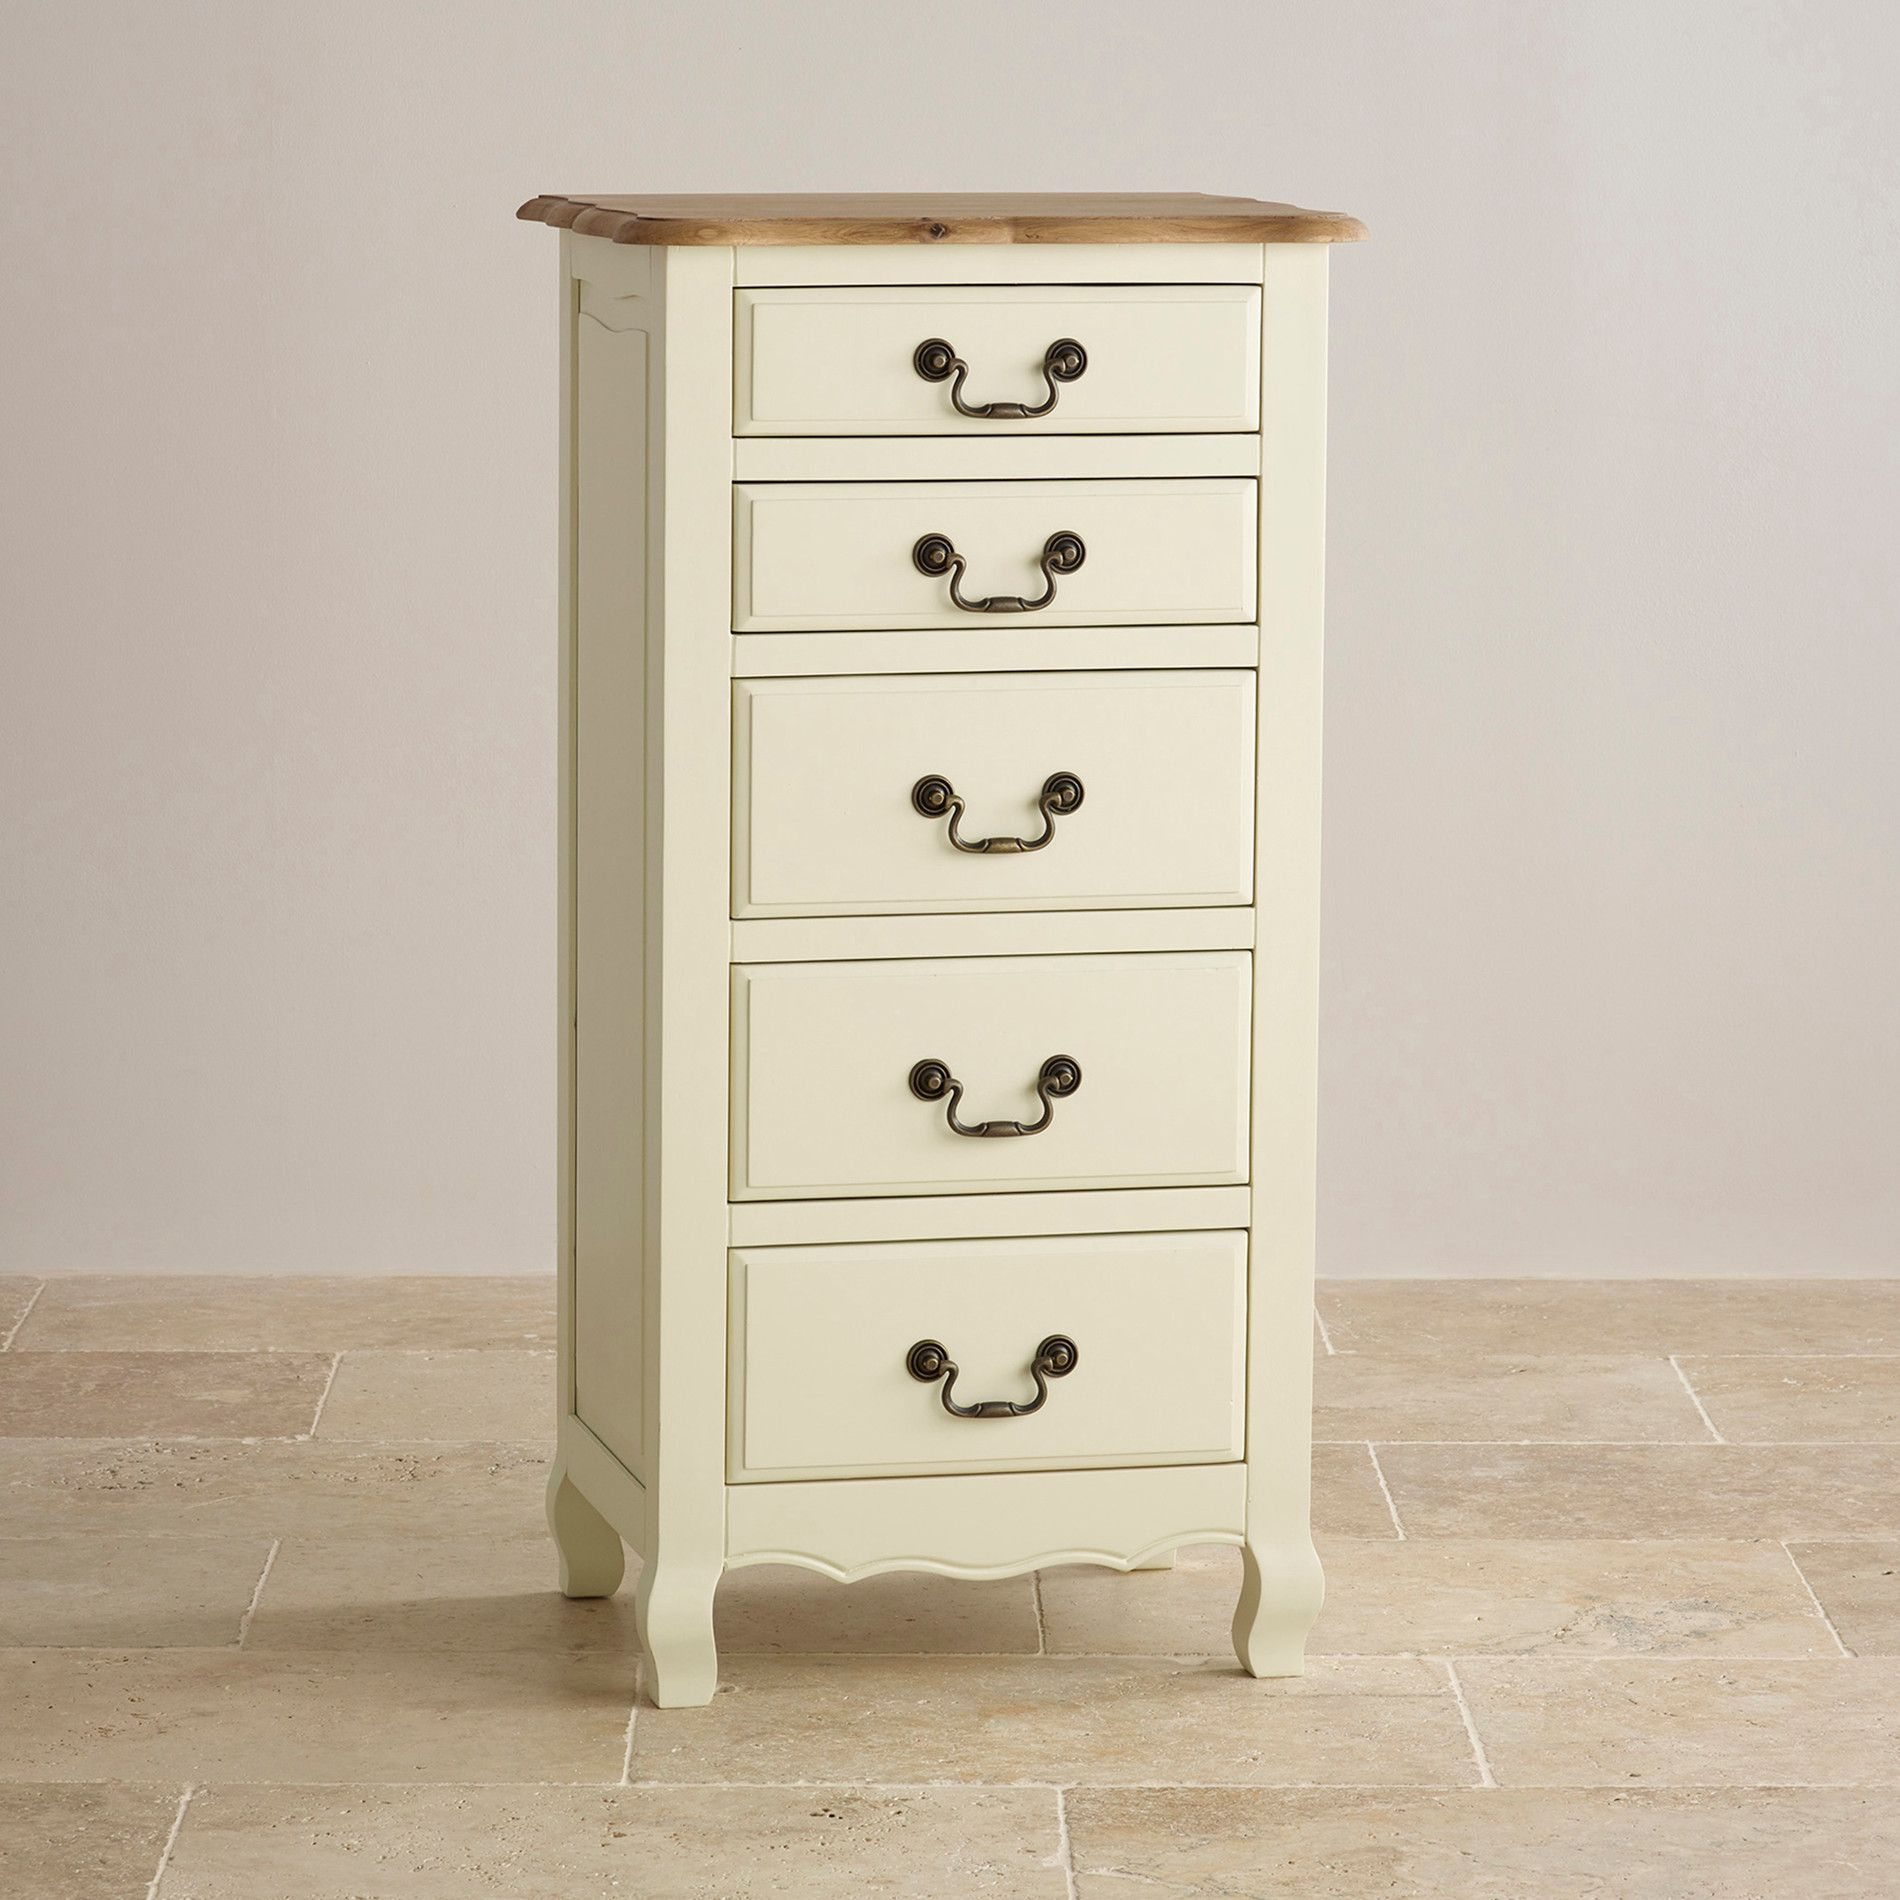 budget a with images on drawers modern tall deep dressers drawer dresser